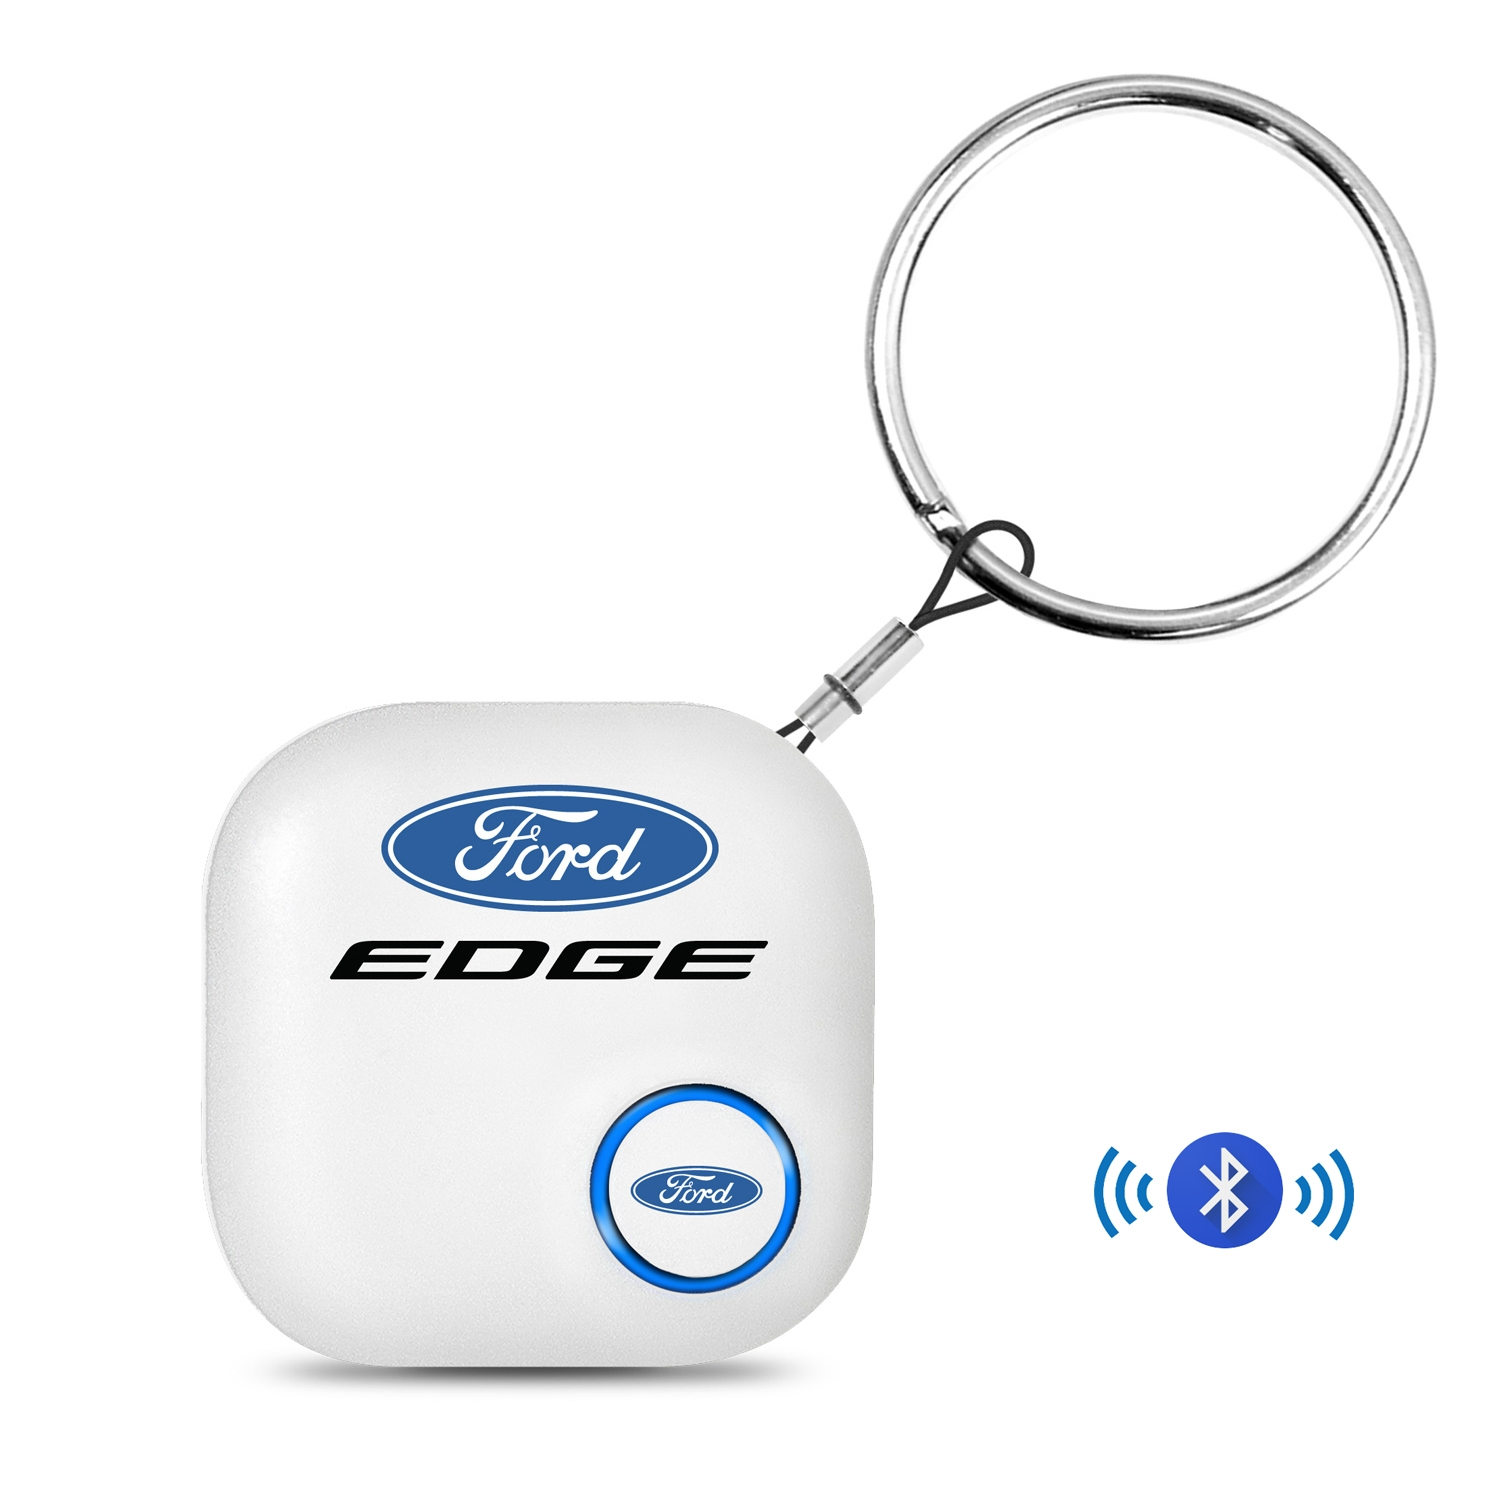 Ford Edge Bluetooth Smart Key Finder Key Chain